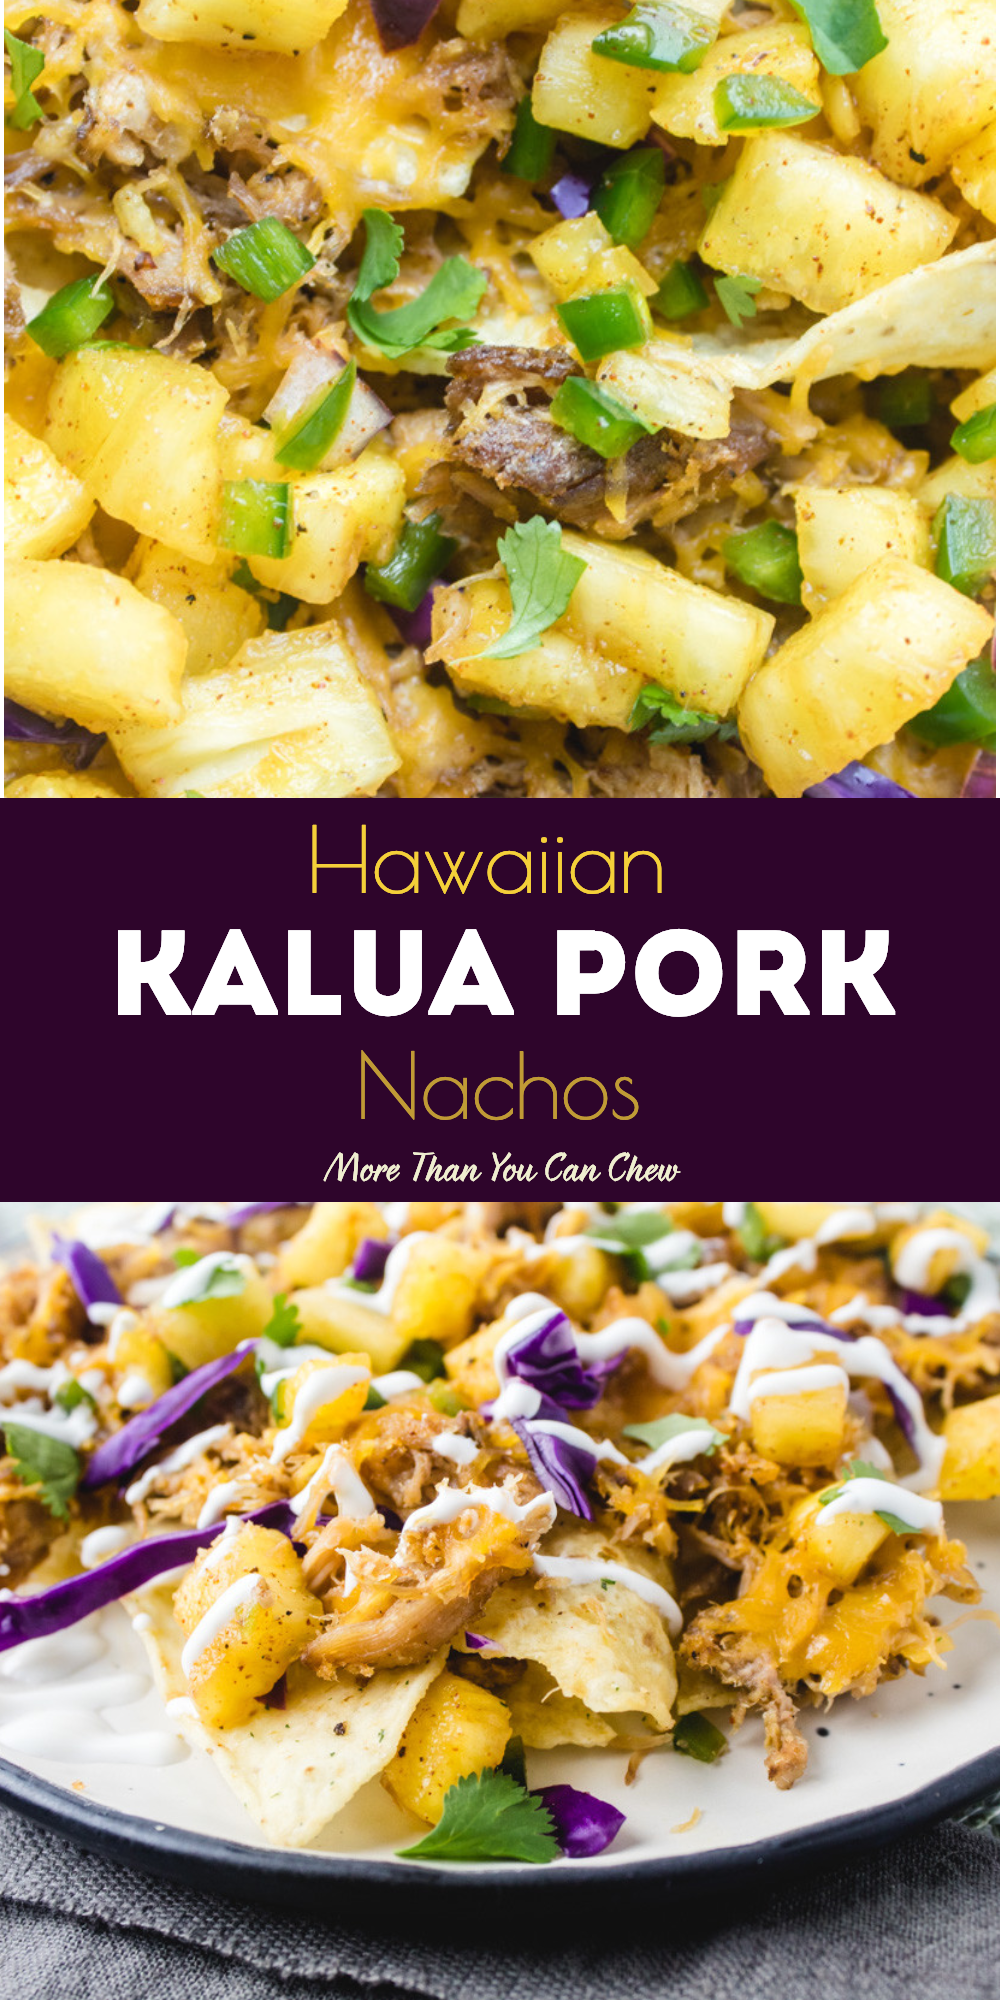 Pulled Kalua Pork Nachos